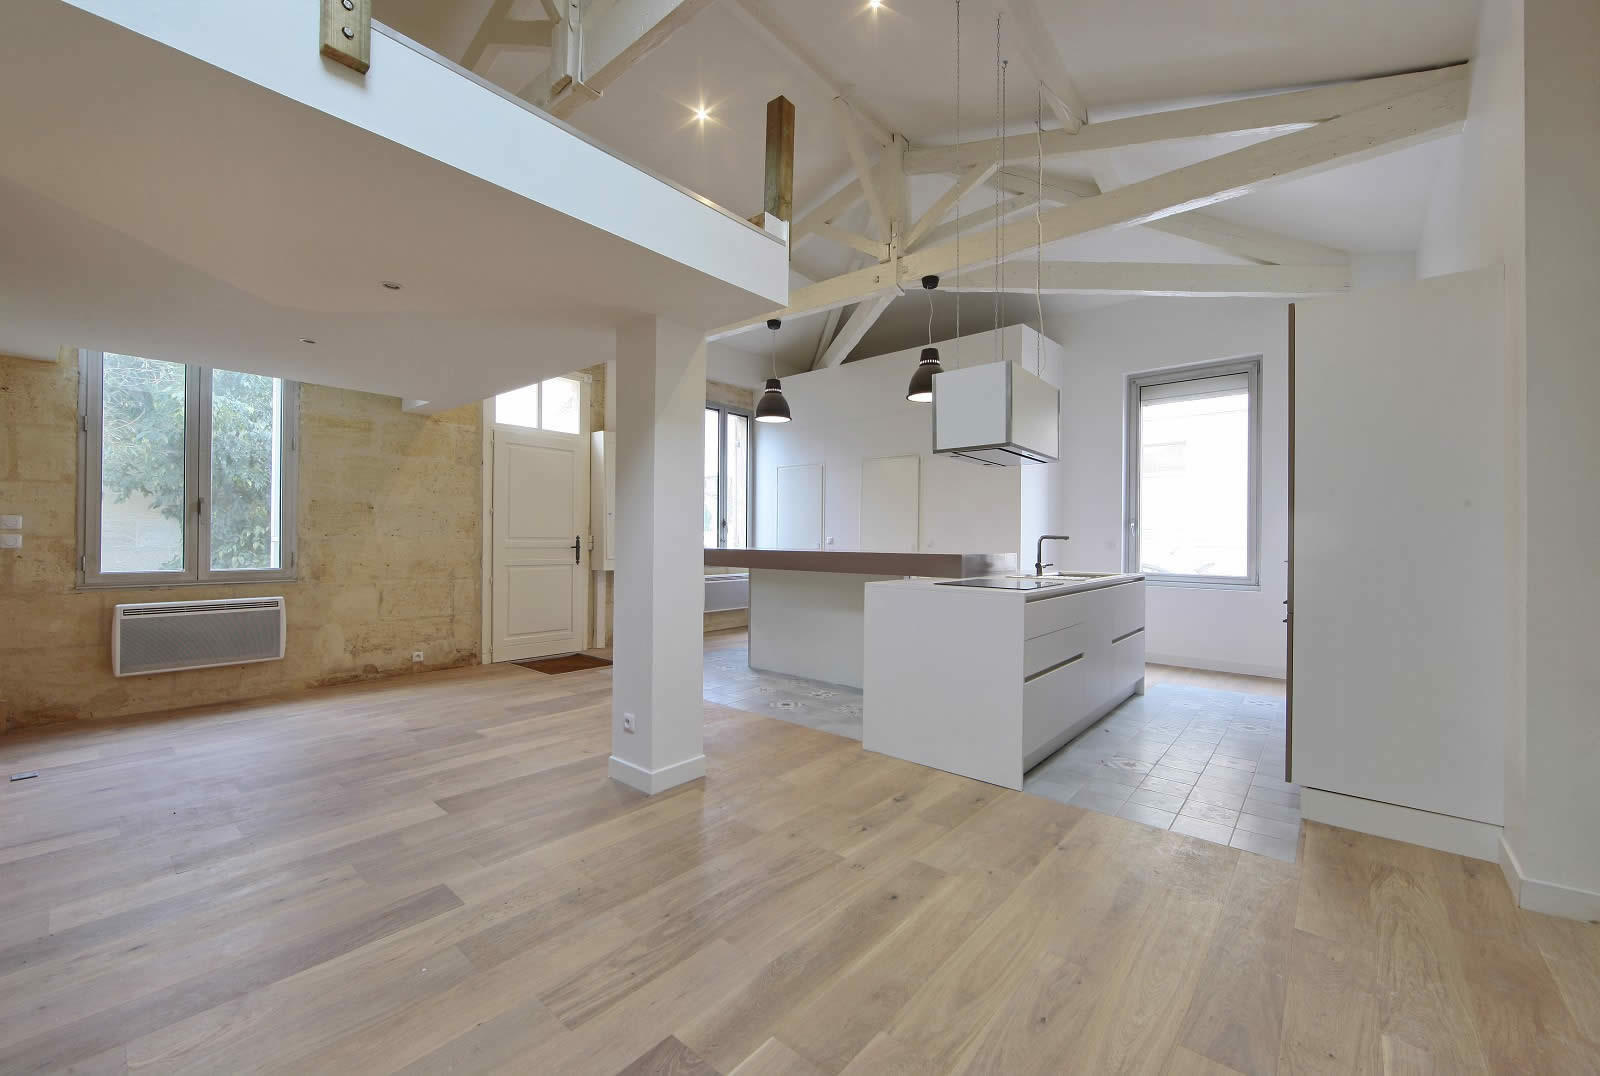 Renovate house with parquet floors exposed beams and - Cuisine maison pierre ...